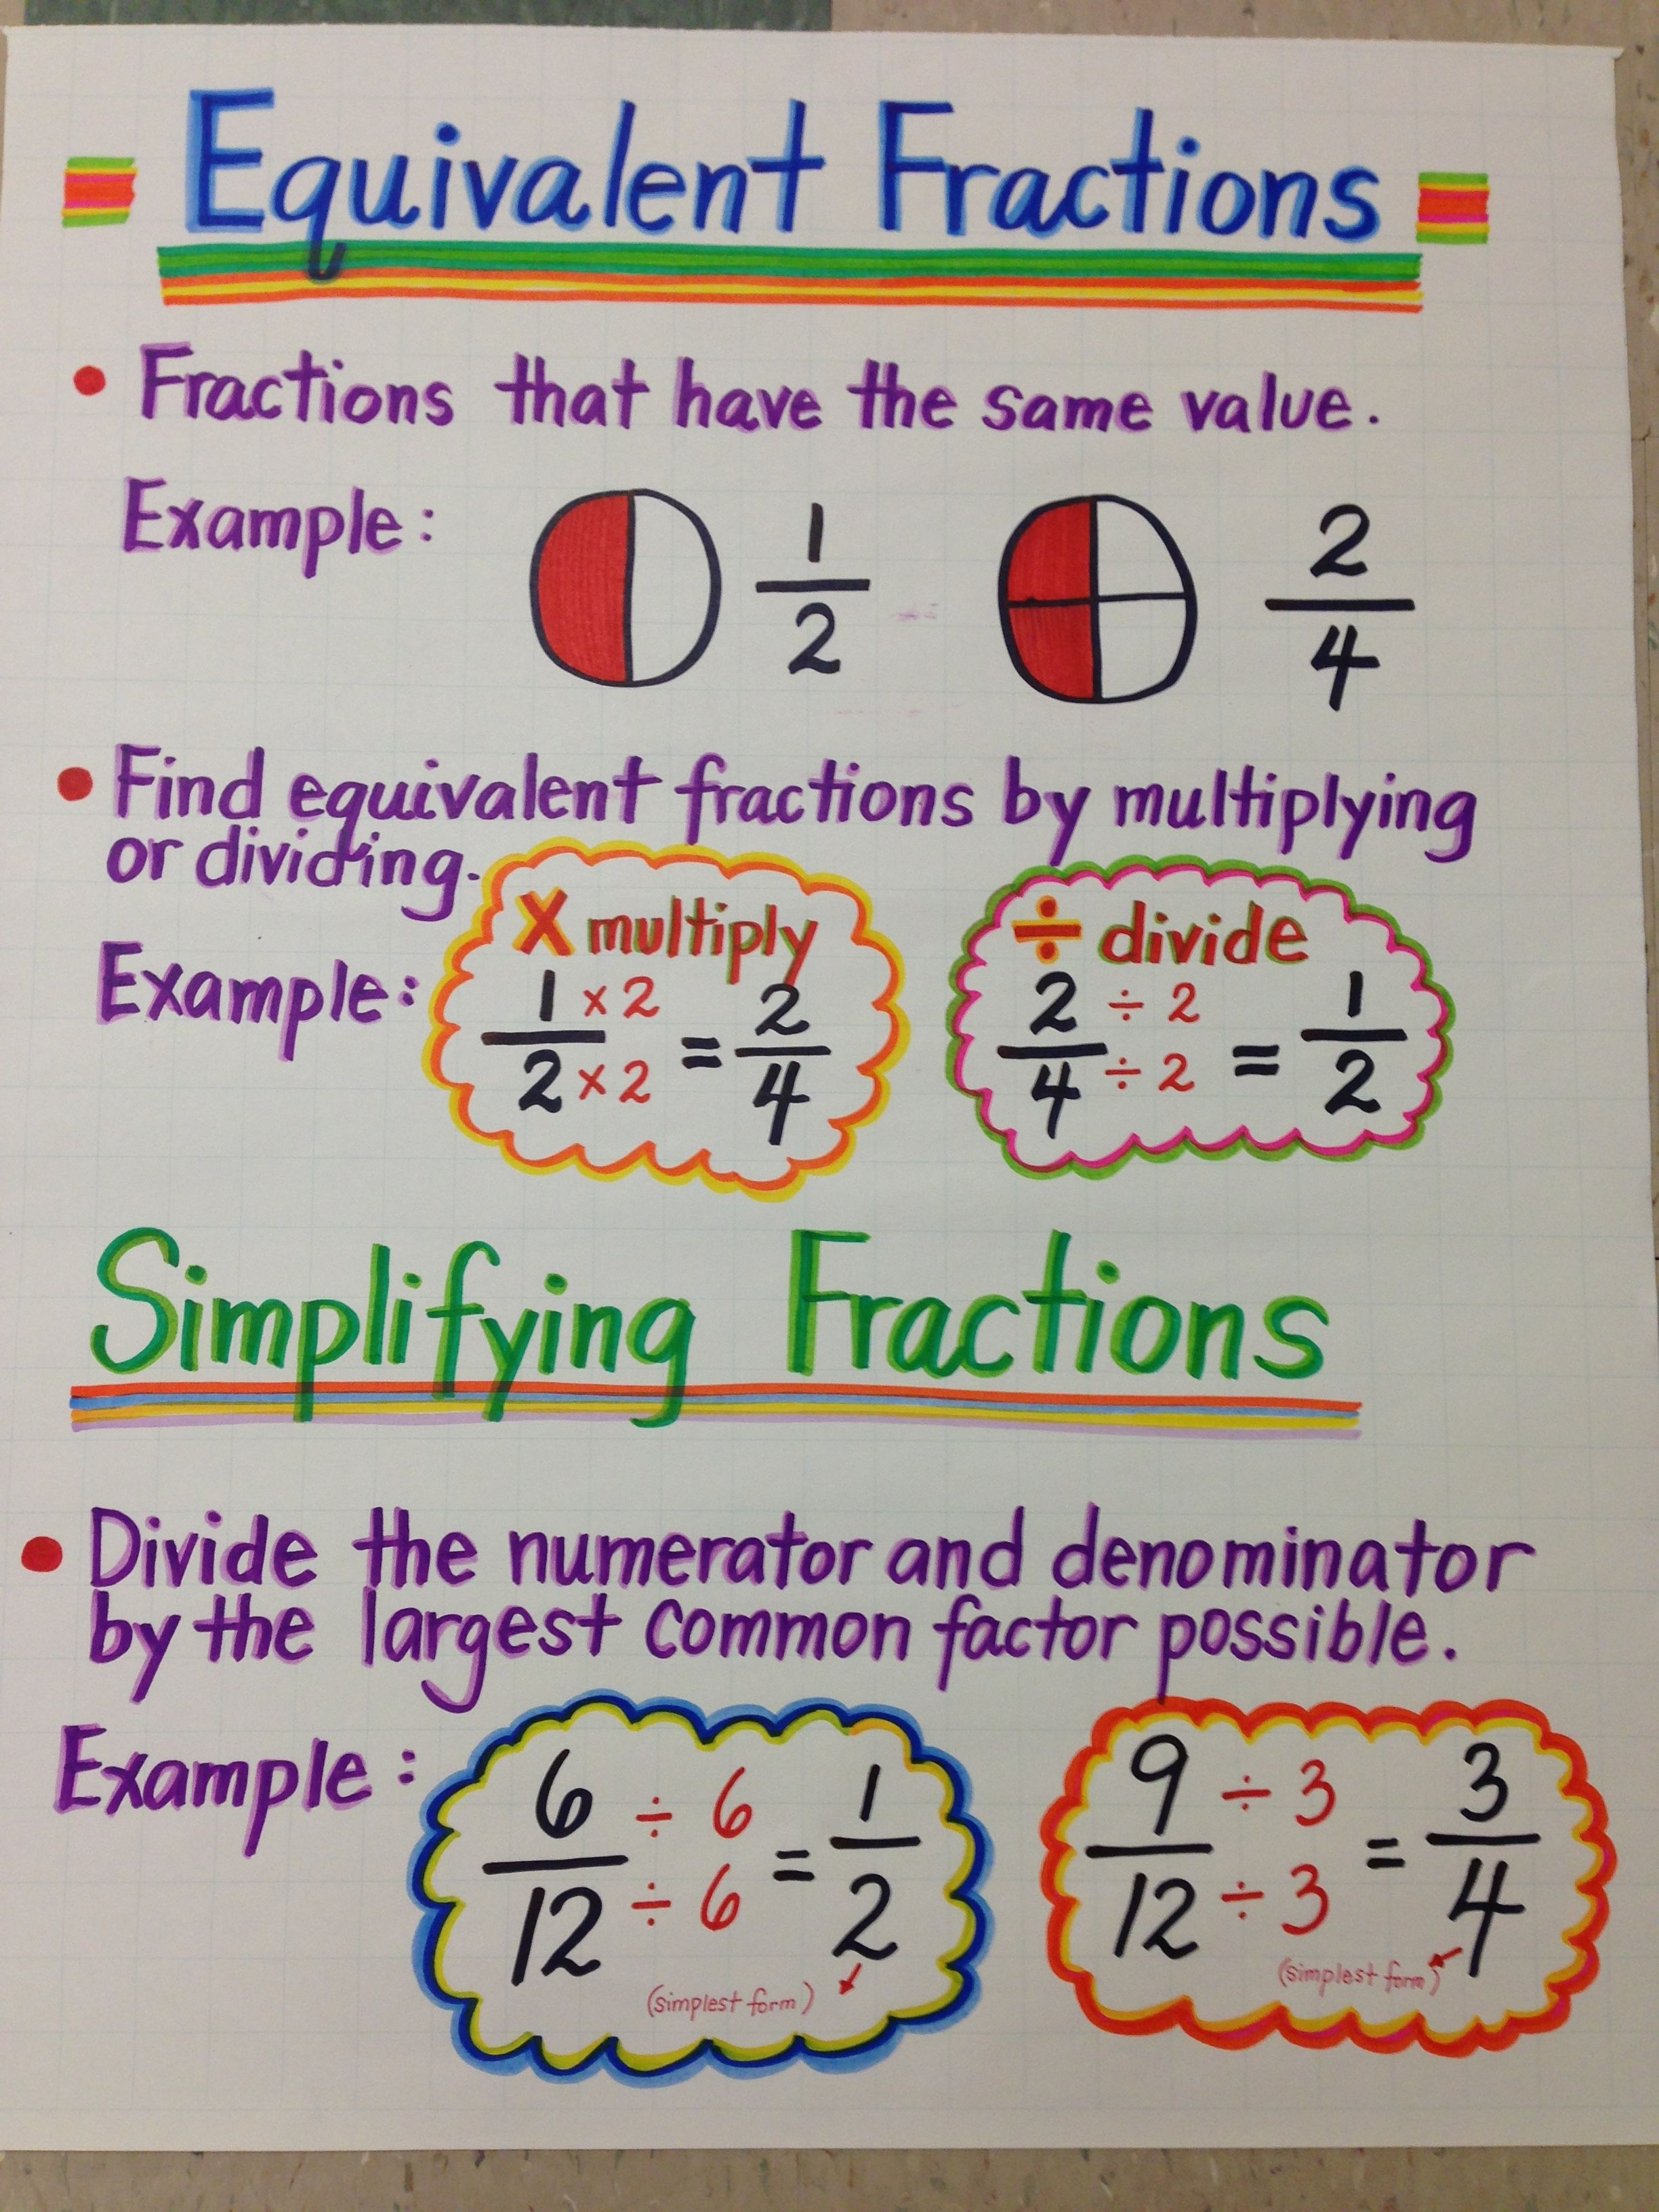 simplest form meaning in math Equivalent Fractions  Simplest form anchor chart, Simplest form